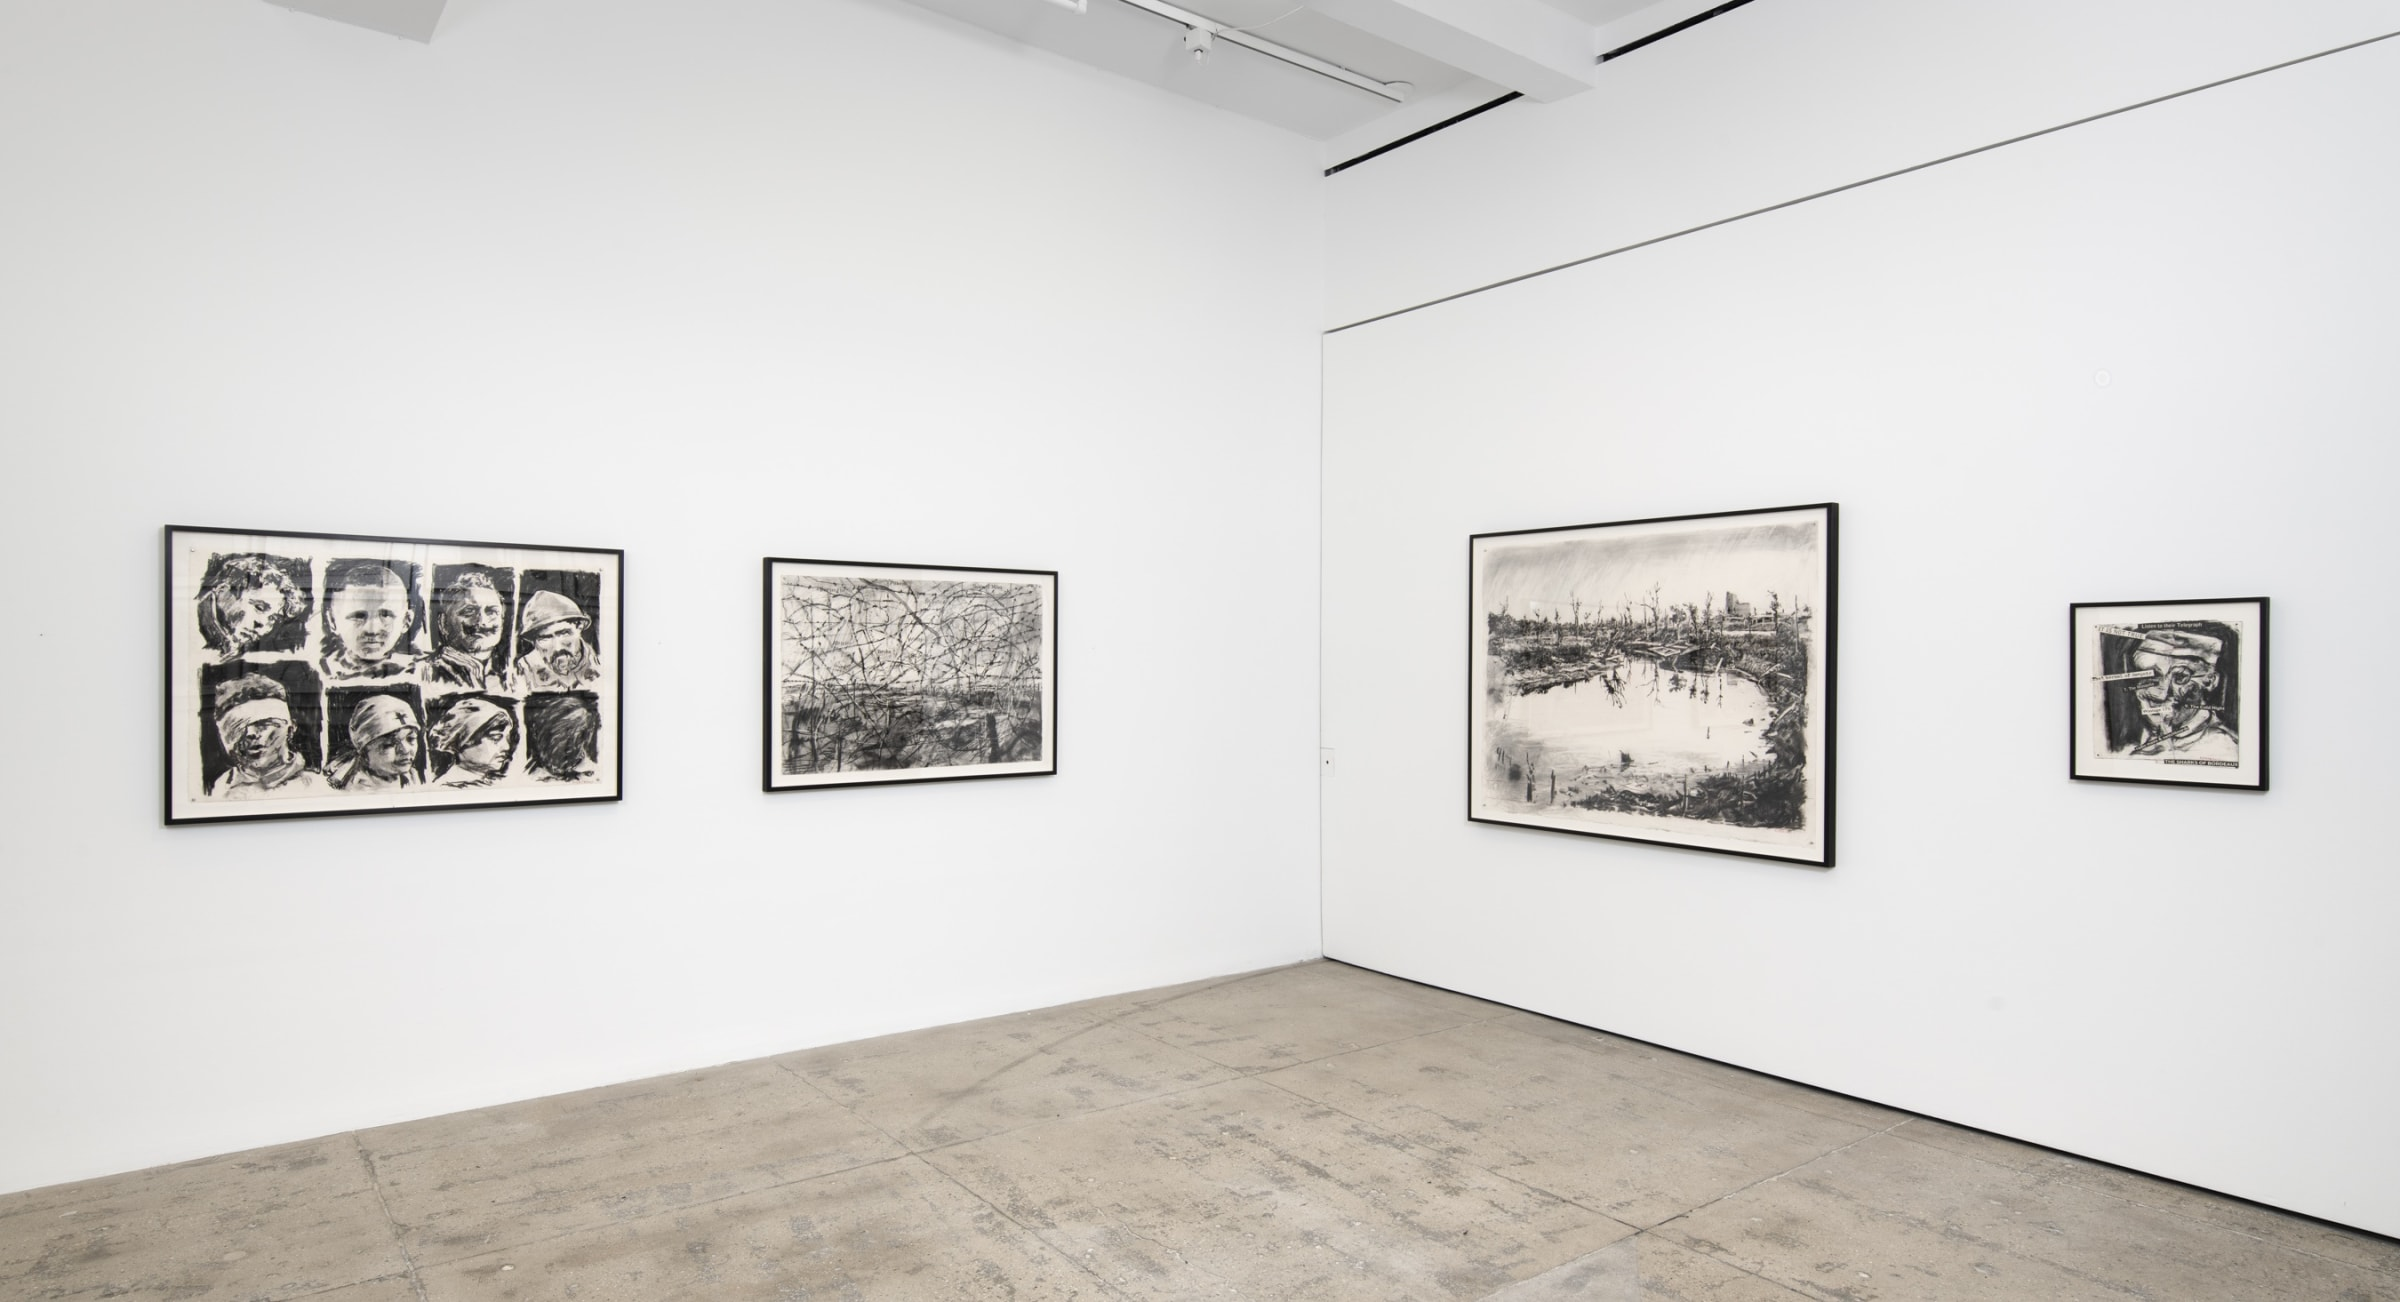 Four graphite drawings of battered children and war-torn landscapes hang in the corner of a room.